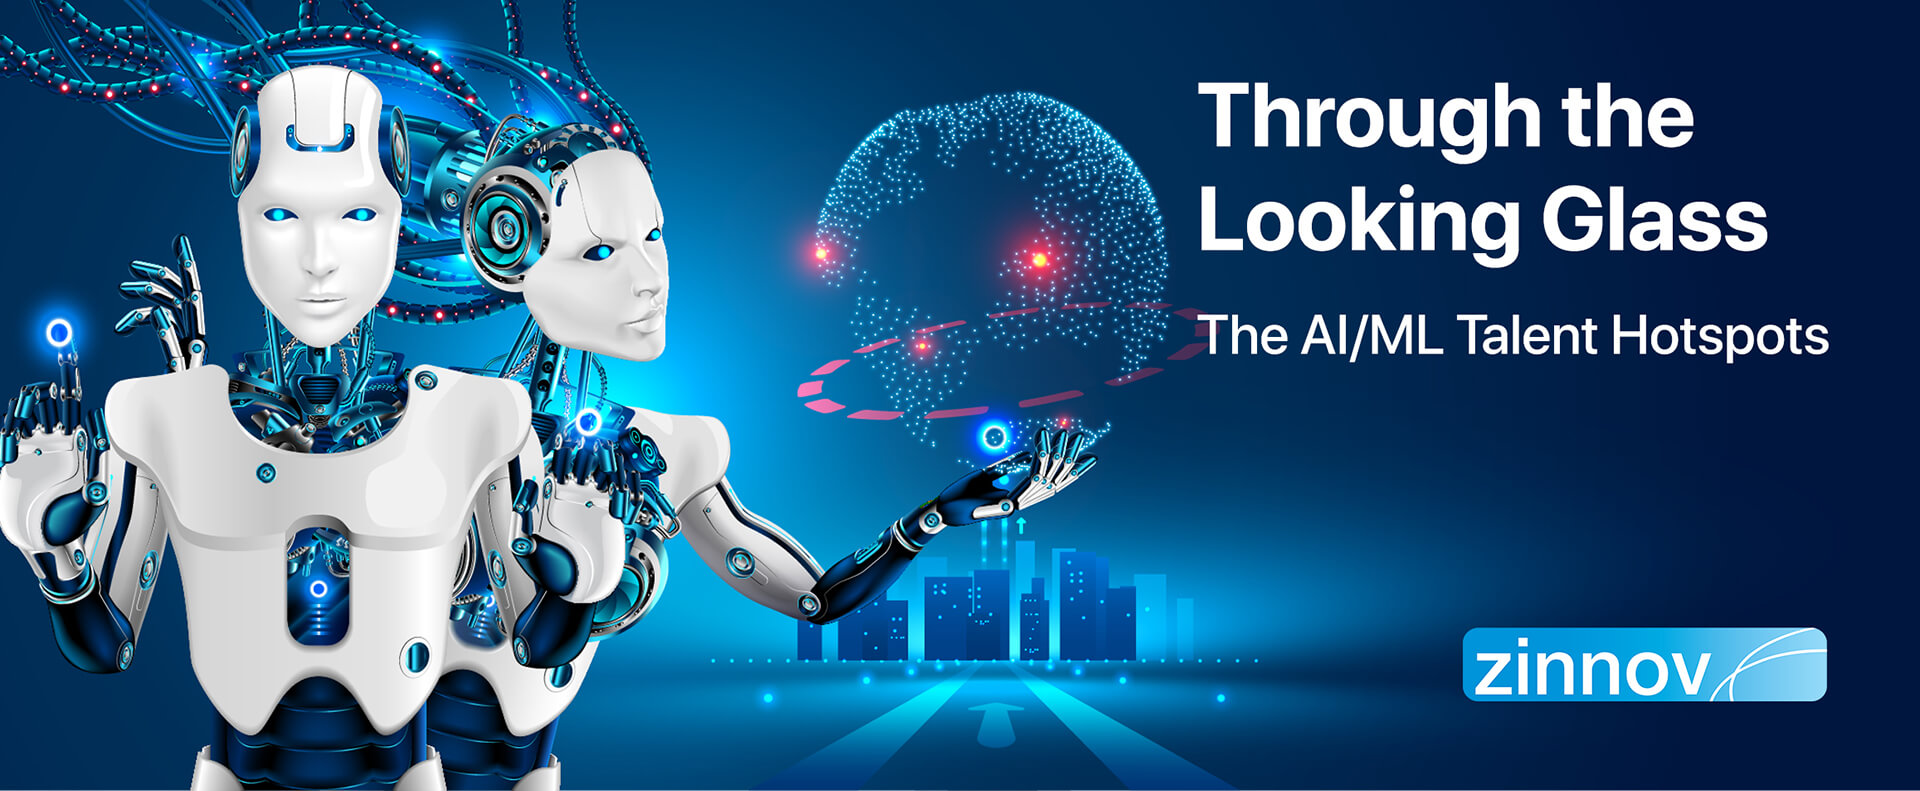 Through The Looking Glass: The AI/ML Talent Hotspots